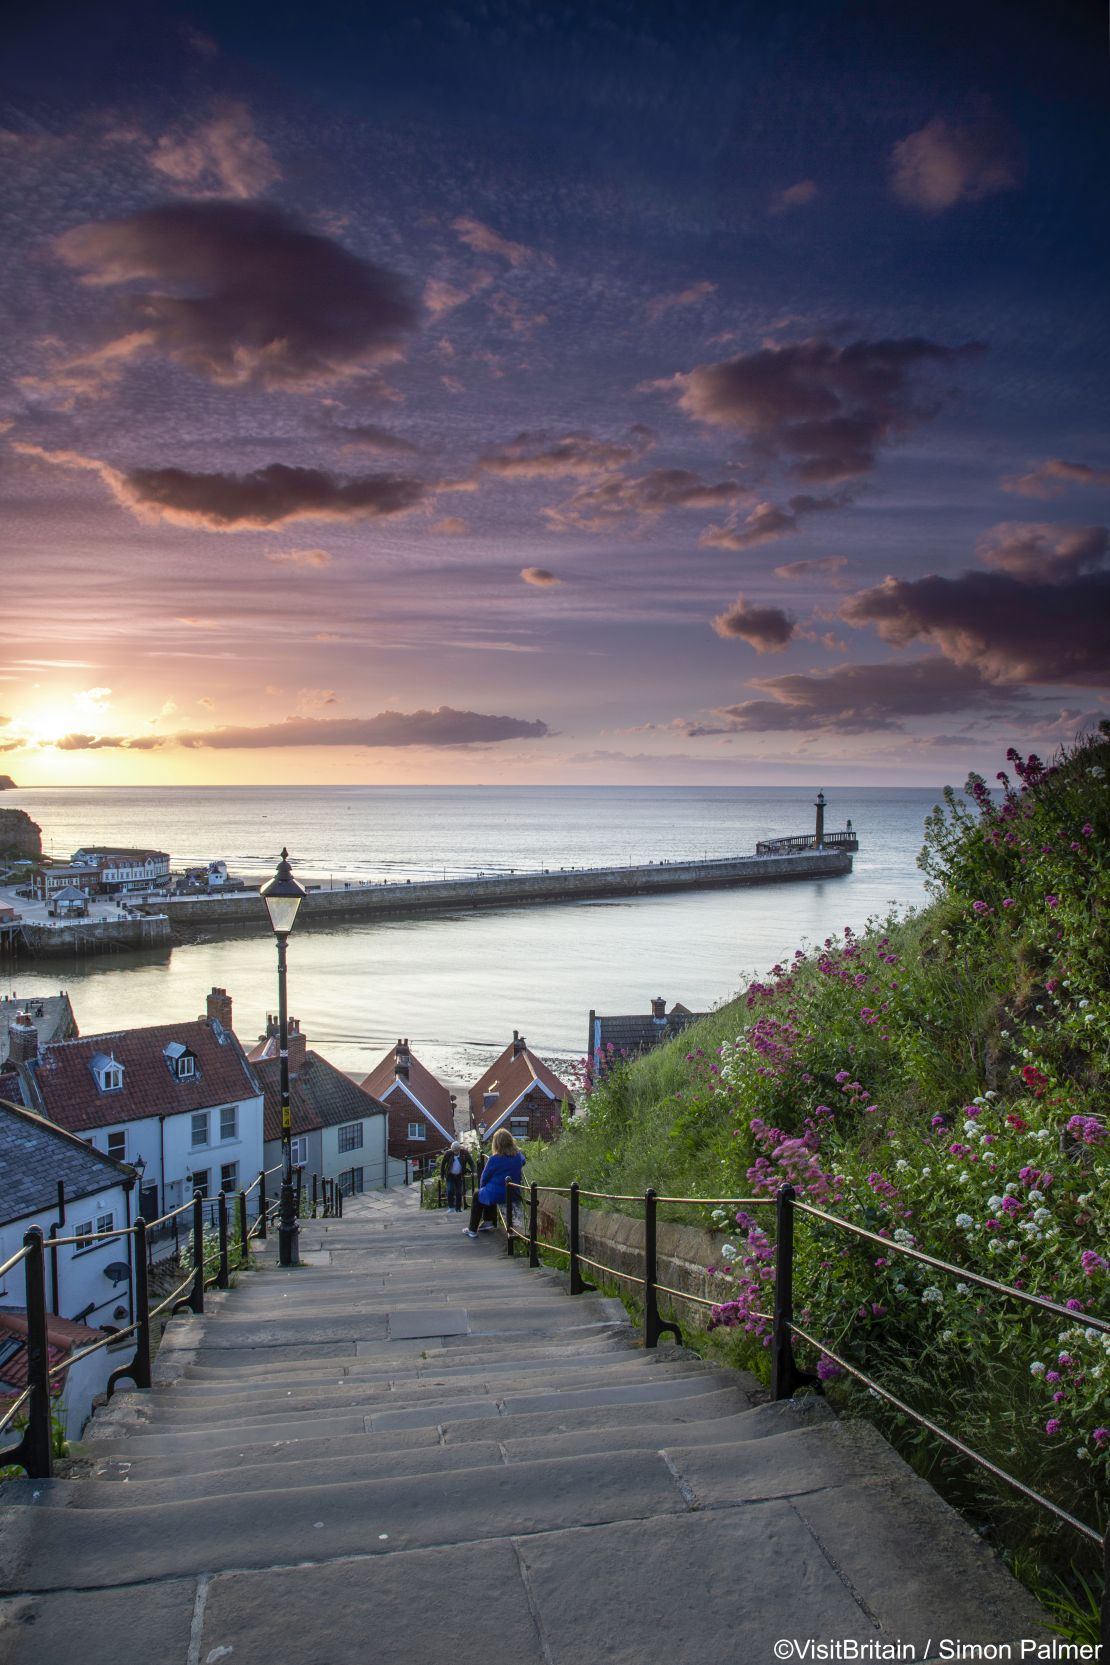 Two people on the steps of a hillside looking towards the pier at Whitby, North Yorkshire, England